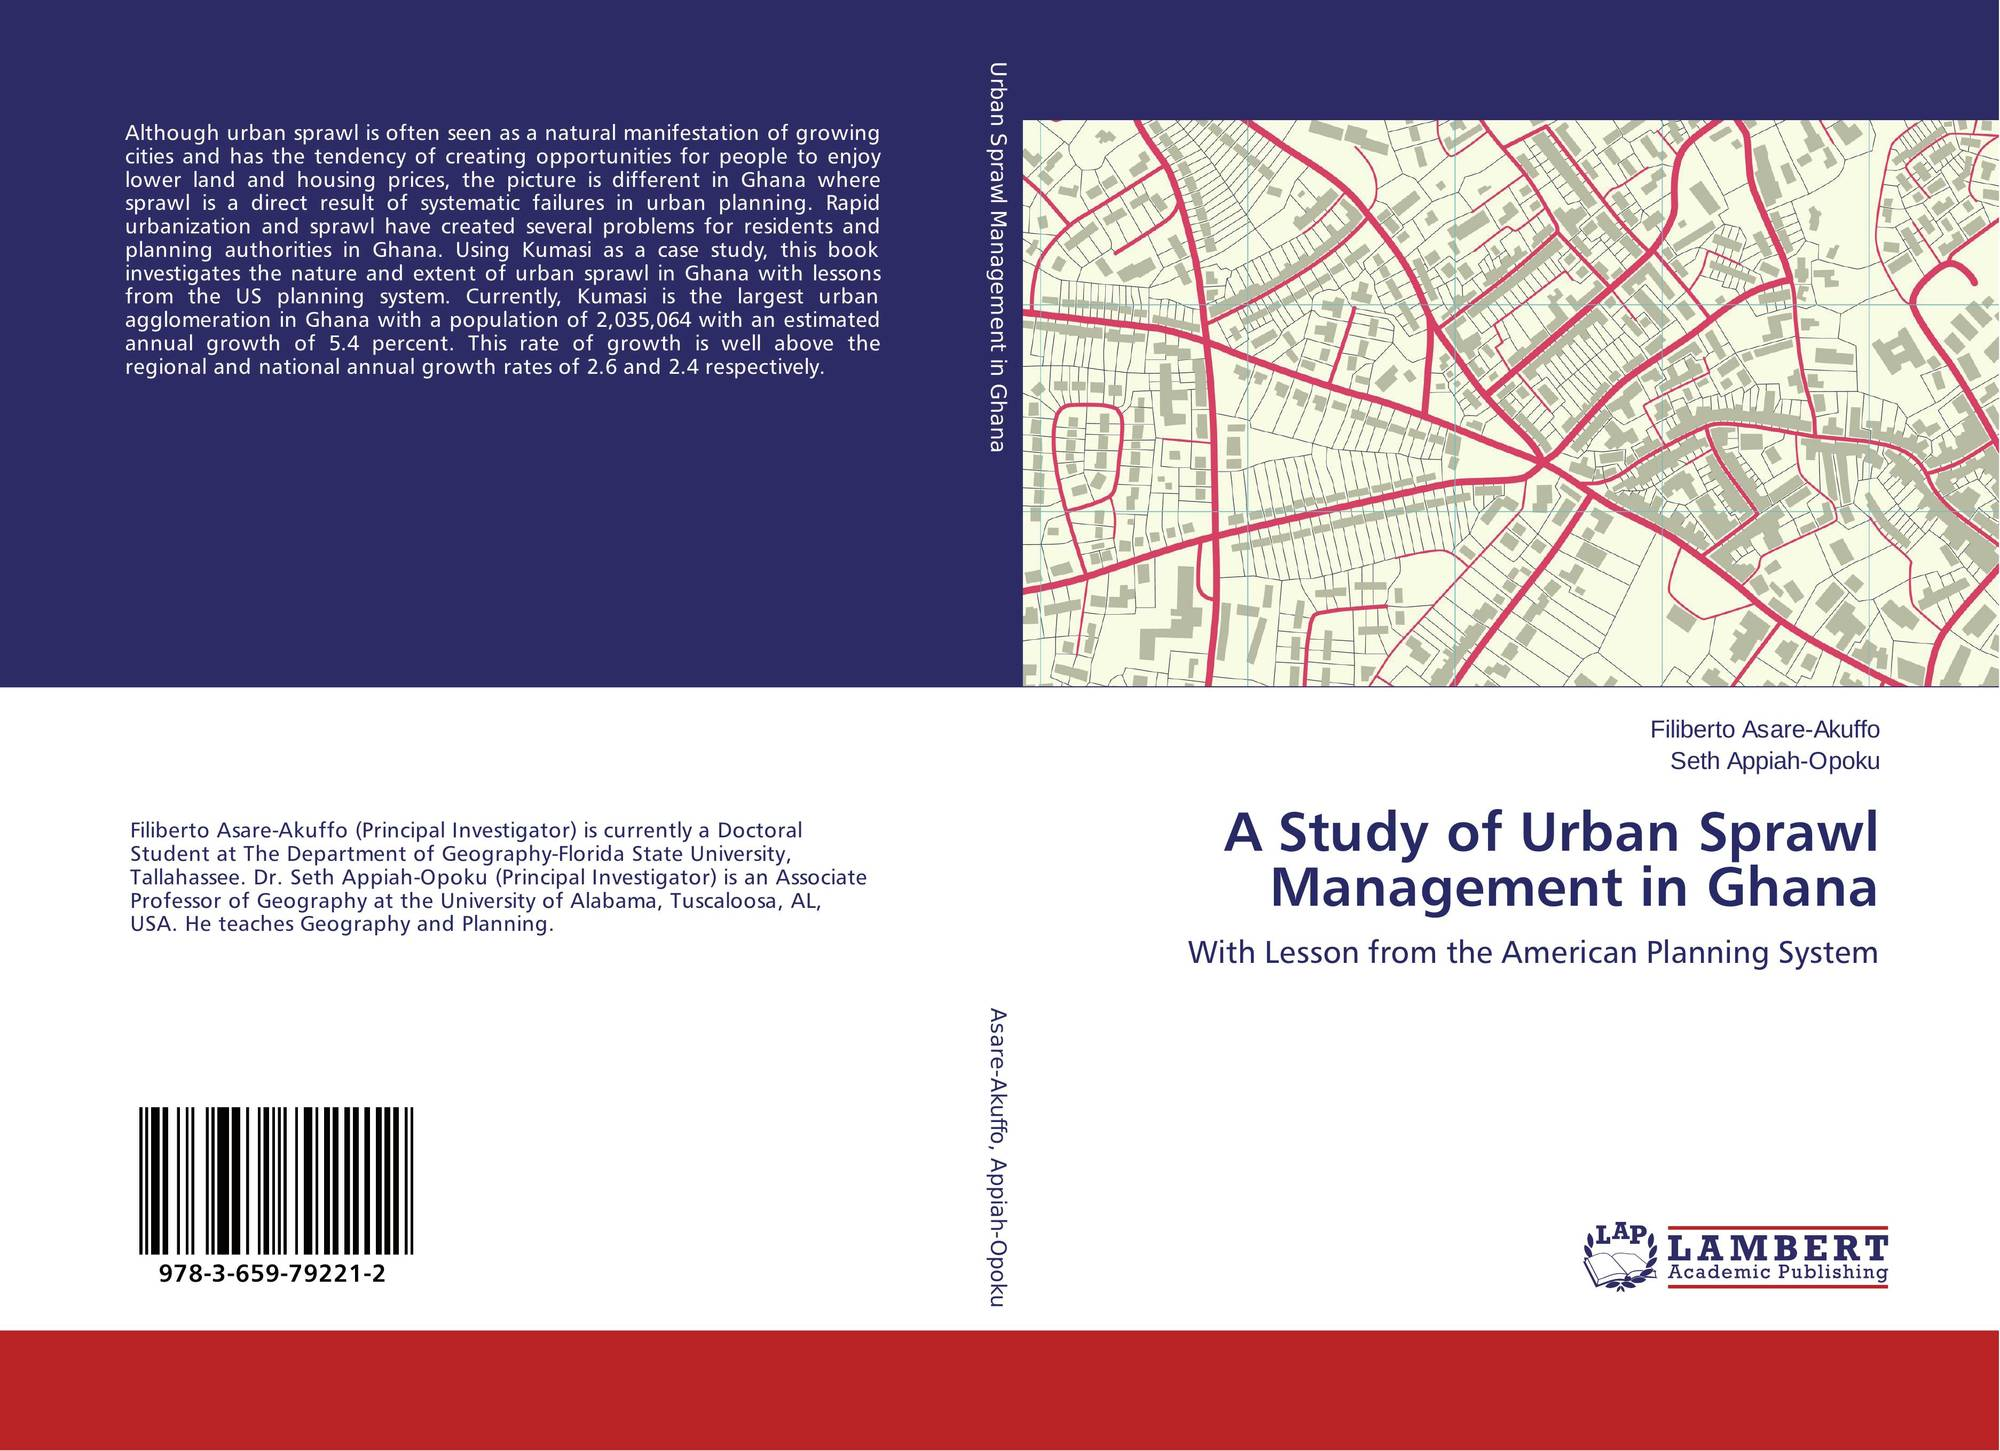 an analysis of urban sprawl Read multi-scale analysis of urban sprawl in europe: towards a european de-sprawling strategy, land use policy on deepdyve, the largest online rental service for scholarly research with thousands of academic publications available at your fingertips.